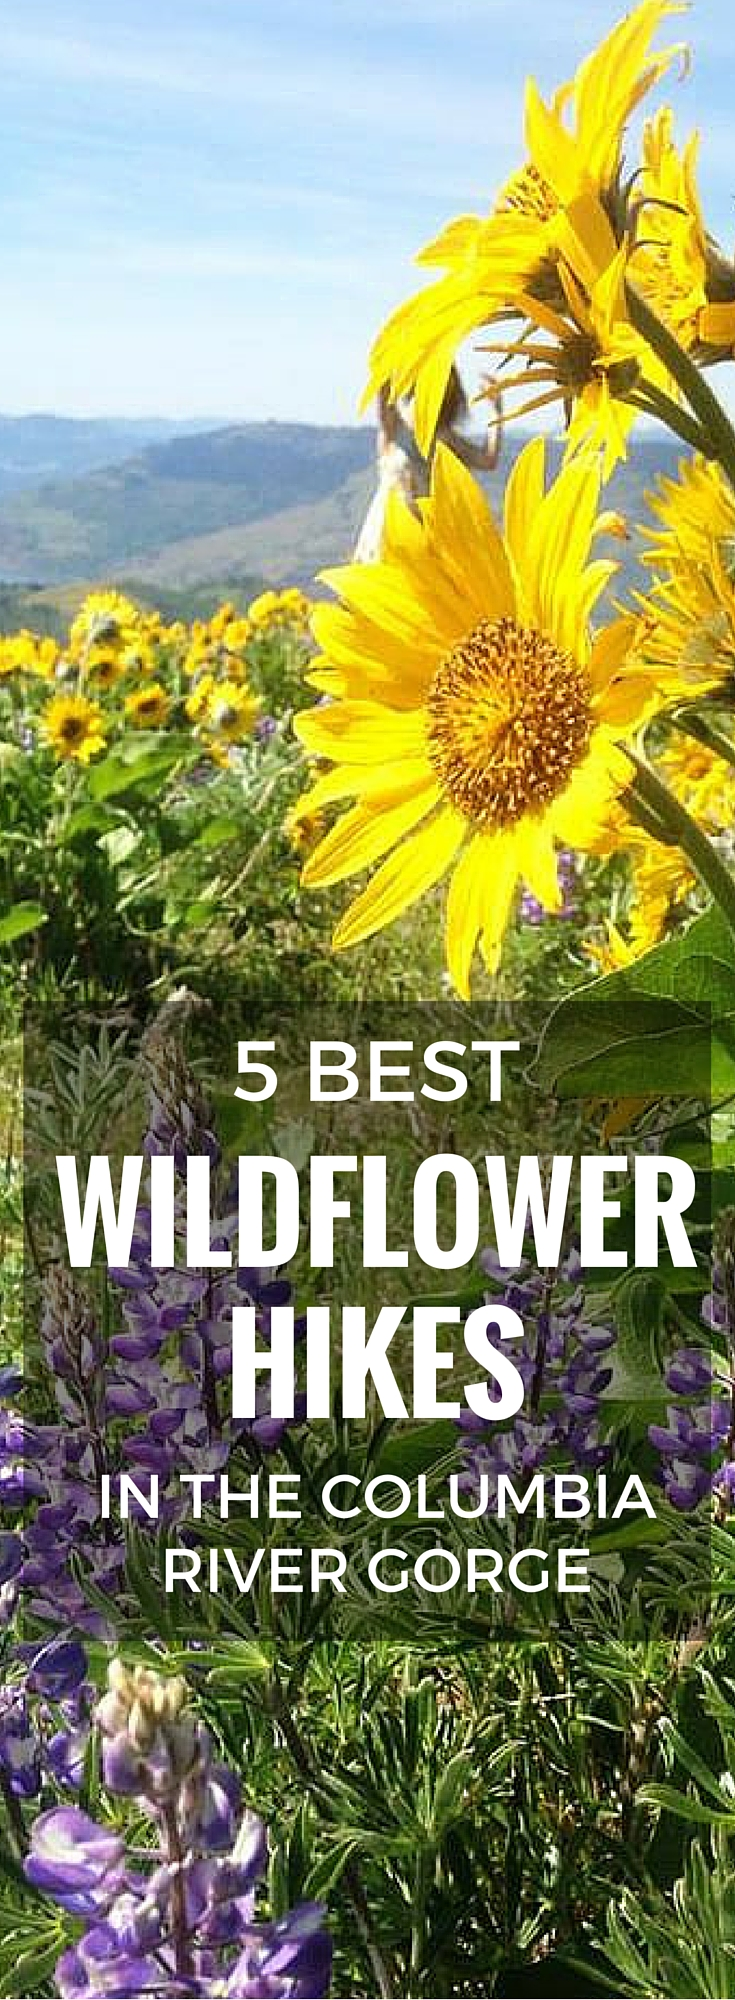 5 Best Wildflower Hikes in the Columbia River Gorge. Wildflowers start popping out in the Eastern Columbia River Gorge in the spring. Here is where to go to see some of the best displays.